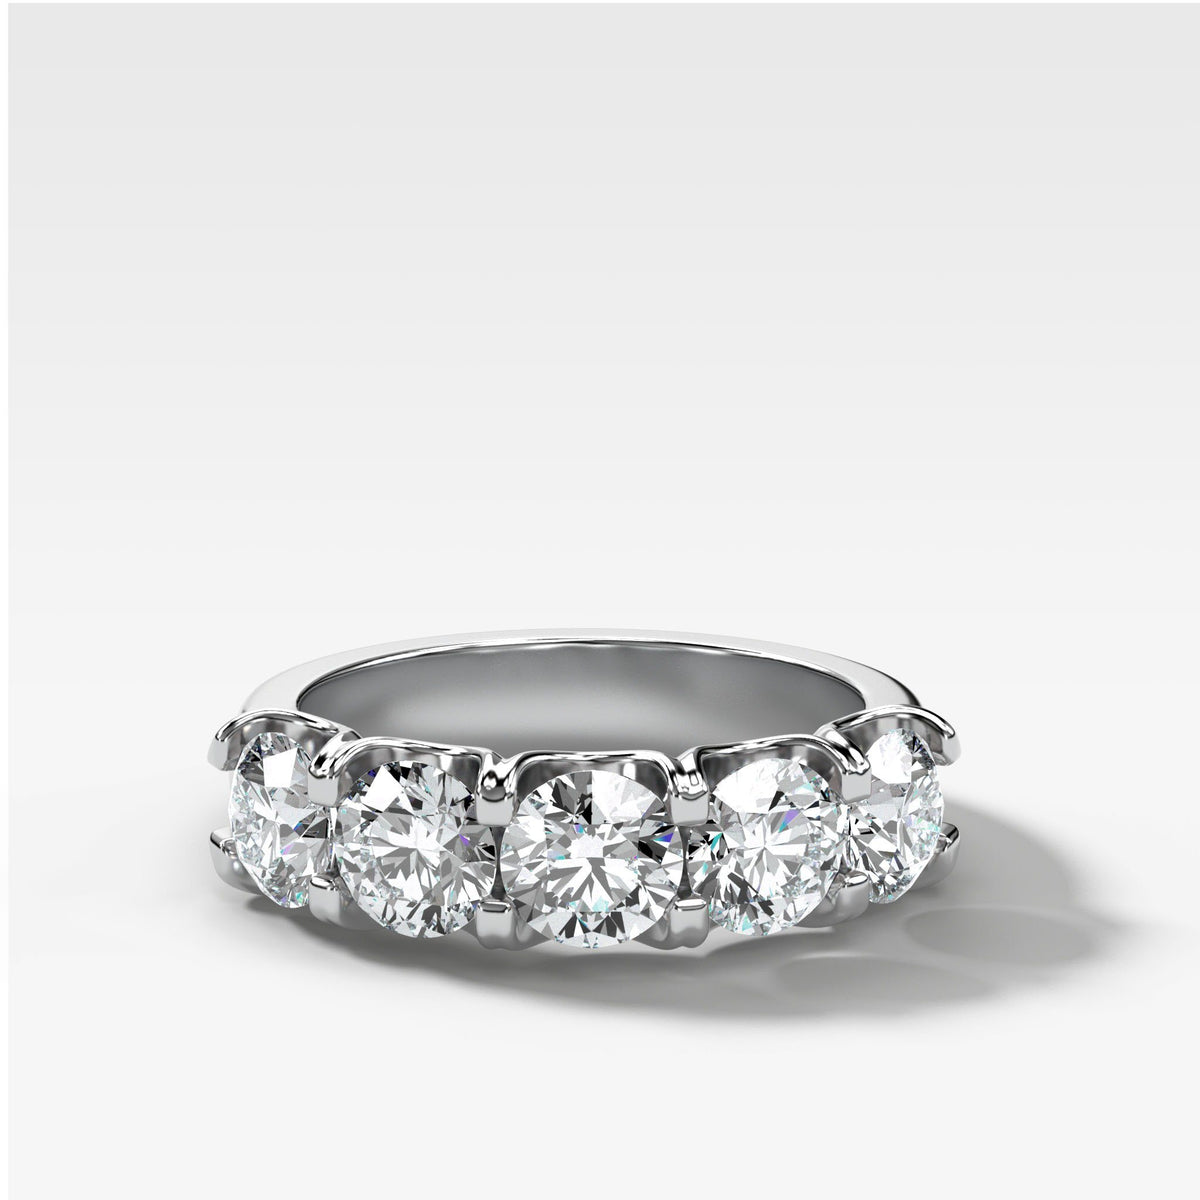 Five Stone Shared Prong Diamond Band With Round Cuts (2.50ctw) In White Gold By Good Stone